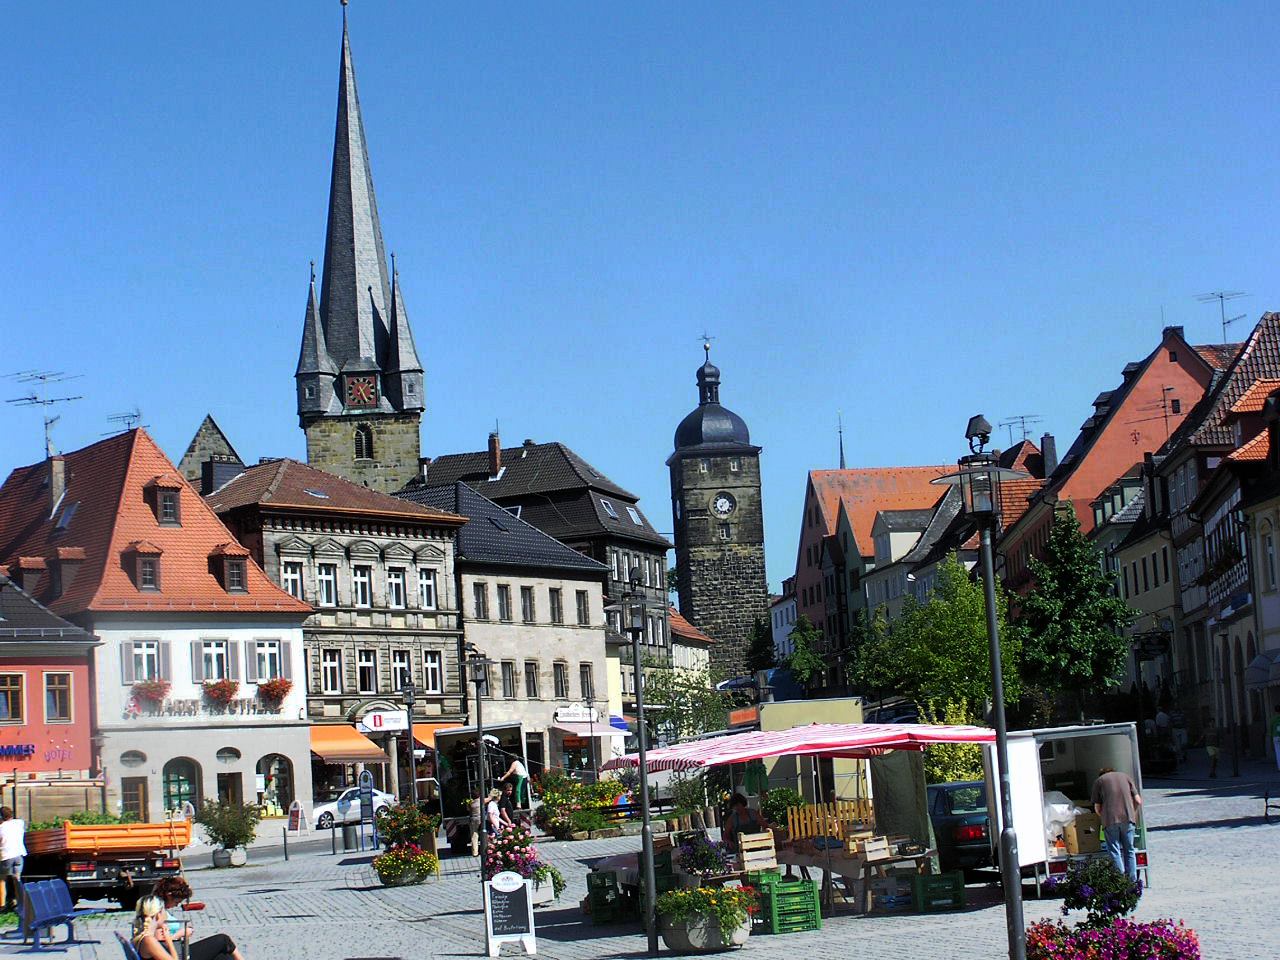 google maps version with File Marktplatz Lichtenfels on File Marktplatz Lichtenfels together with Galeria also File althaea officinalis 003 in addition HdyqhpV6w2u together with Show photo php.